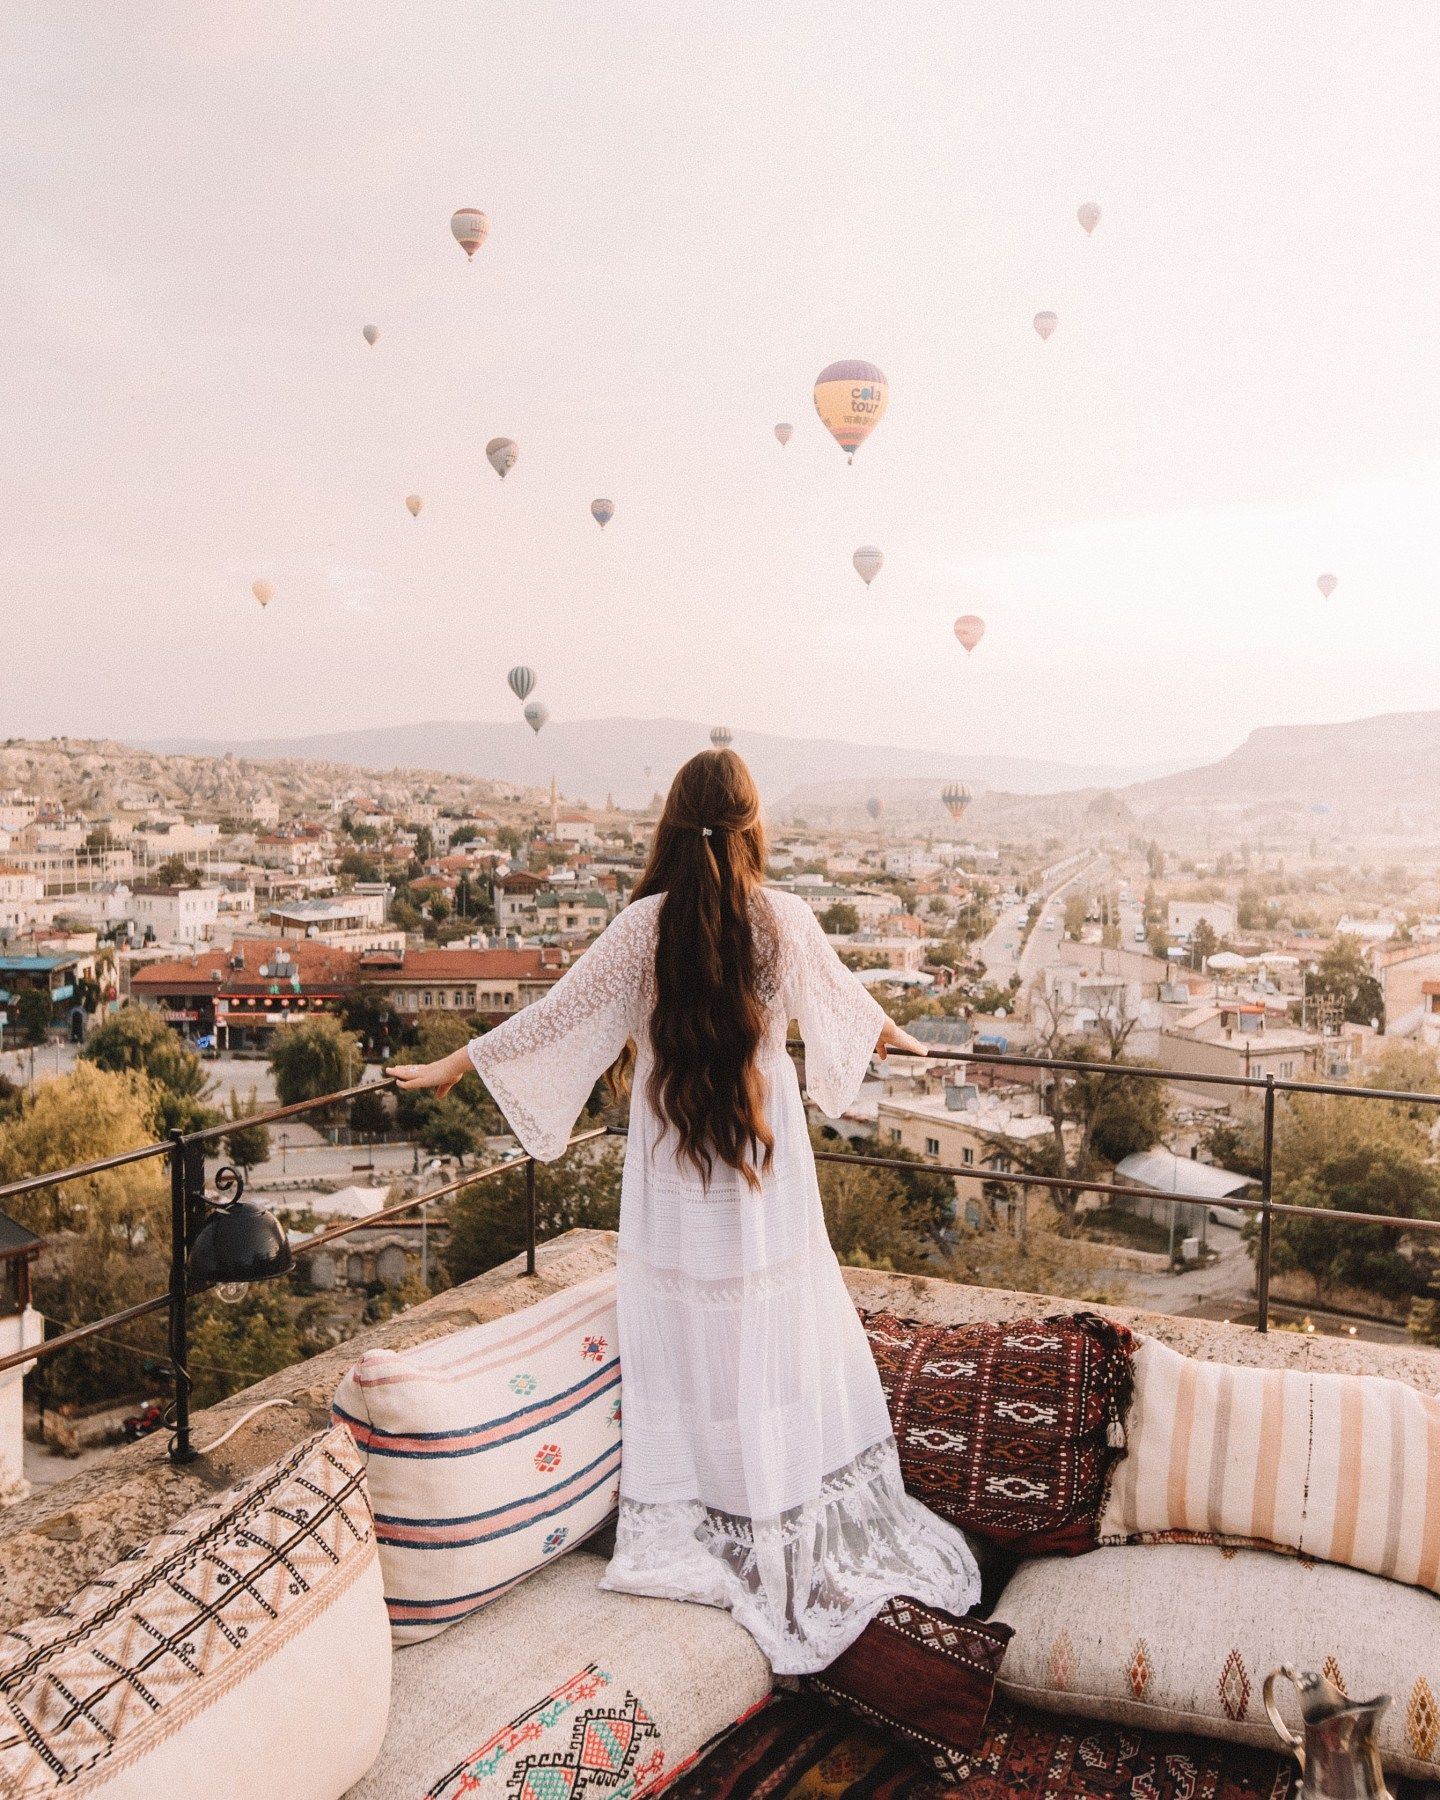 The 5 Best Photo Spots in Cappadocia, Turkey Cappadocia